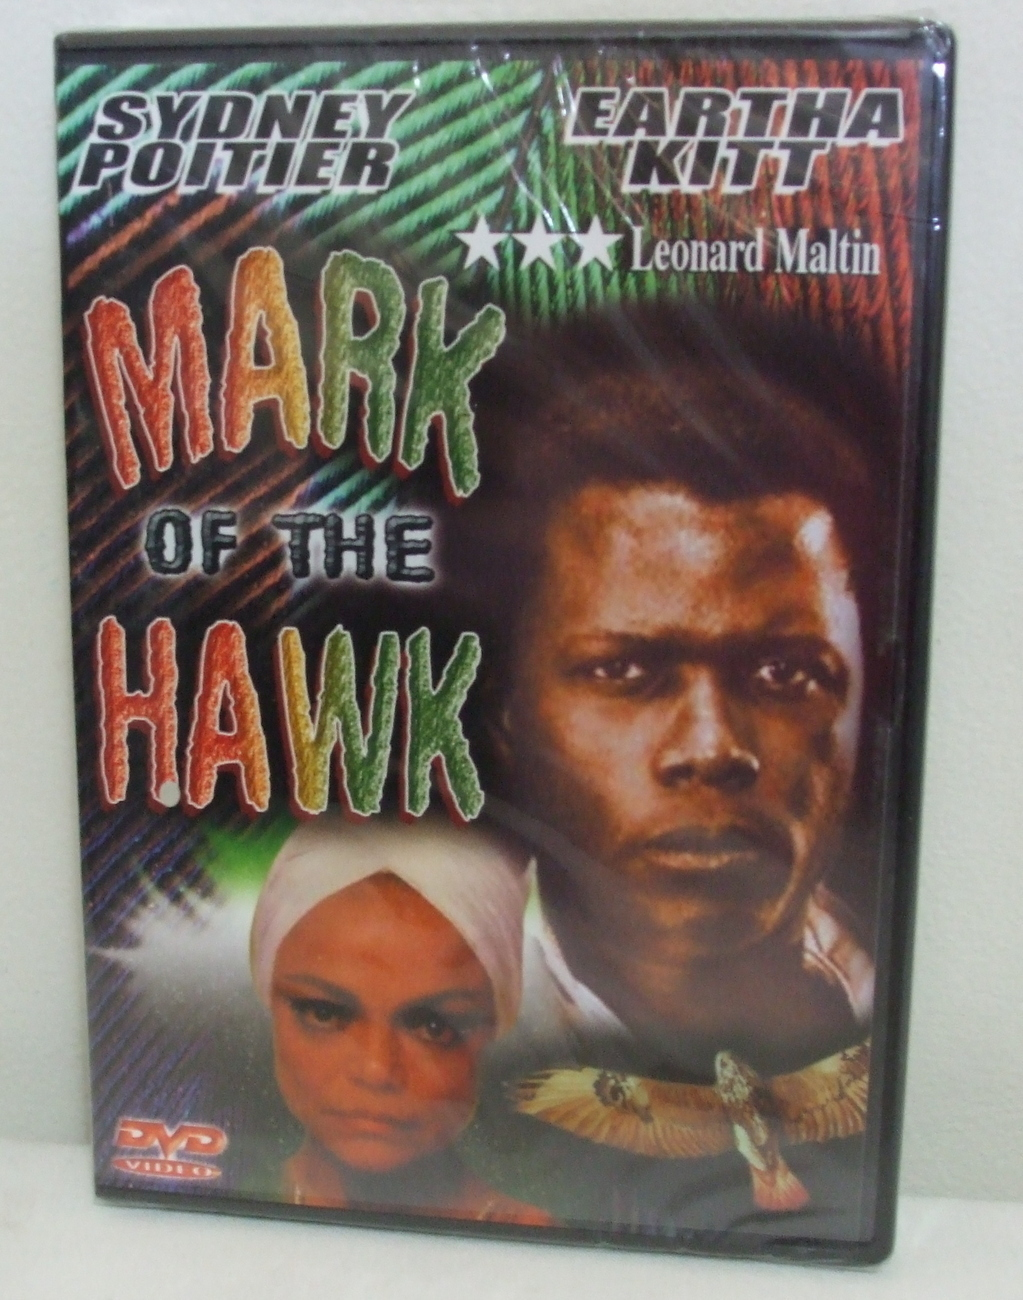 DVD New Sealed Mark of the Hawk Sydney Poitier and Eartha Kitt